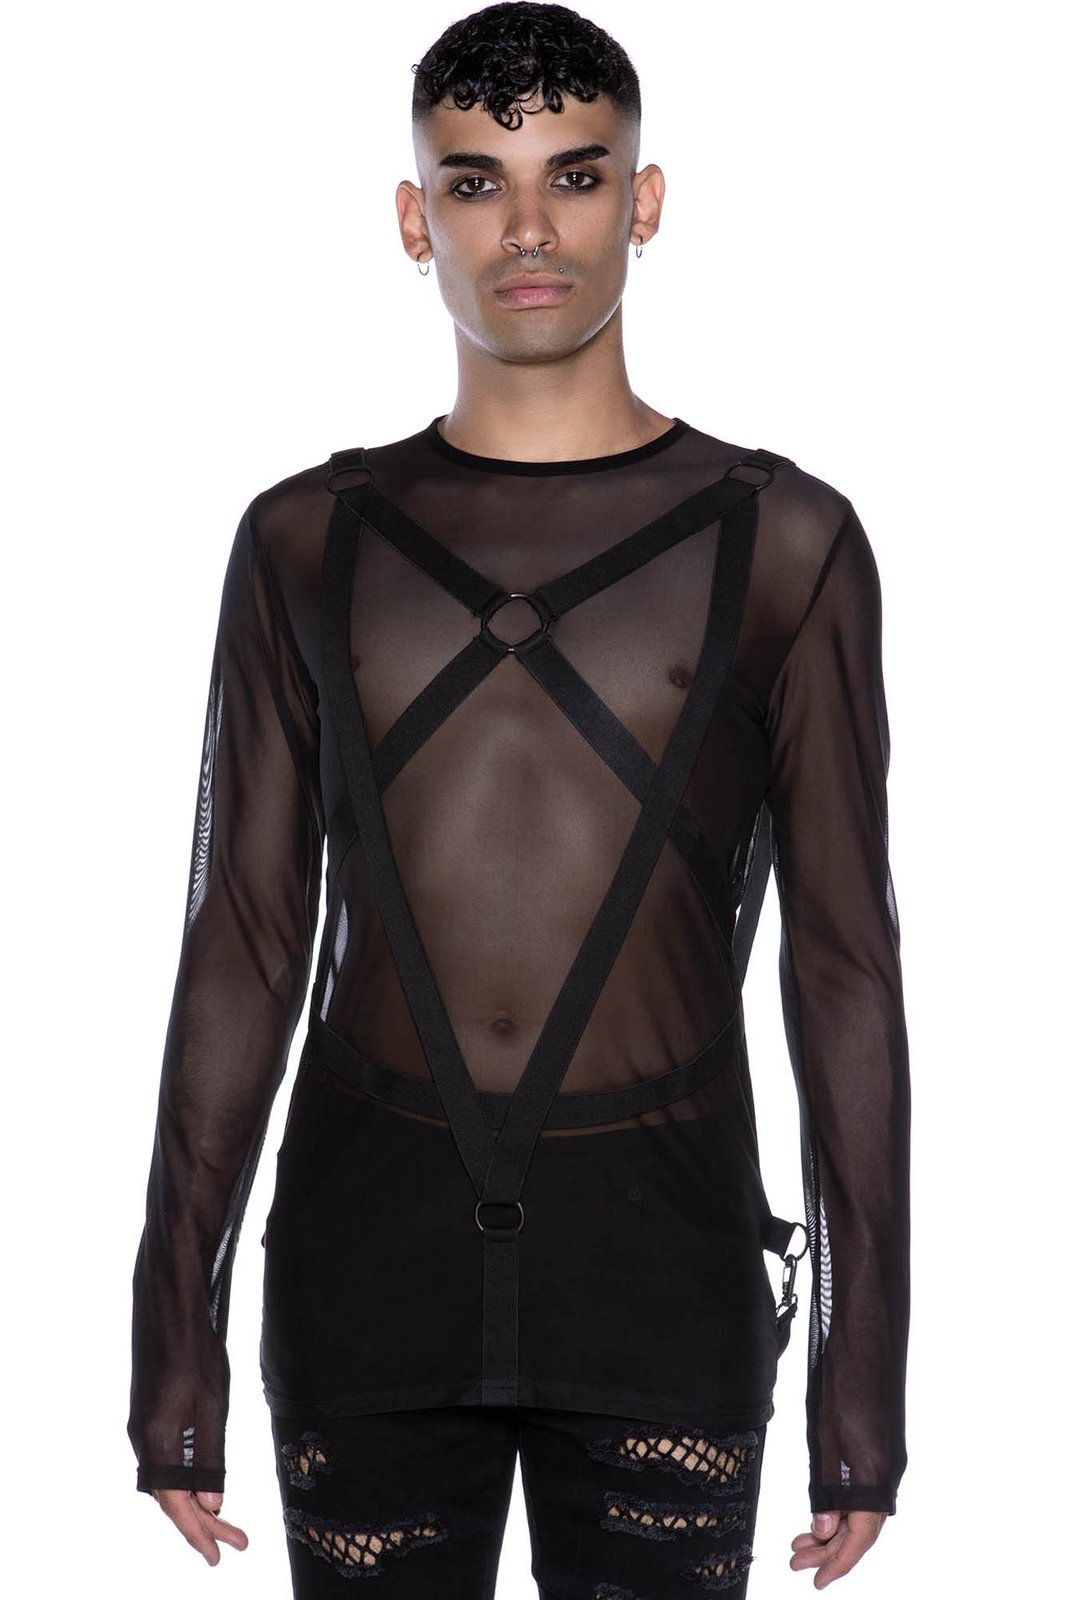 Elysium Fishnet Top Black